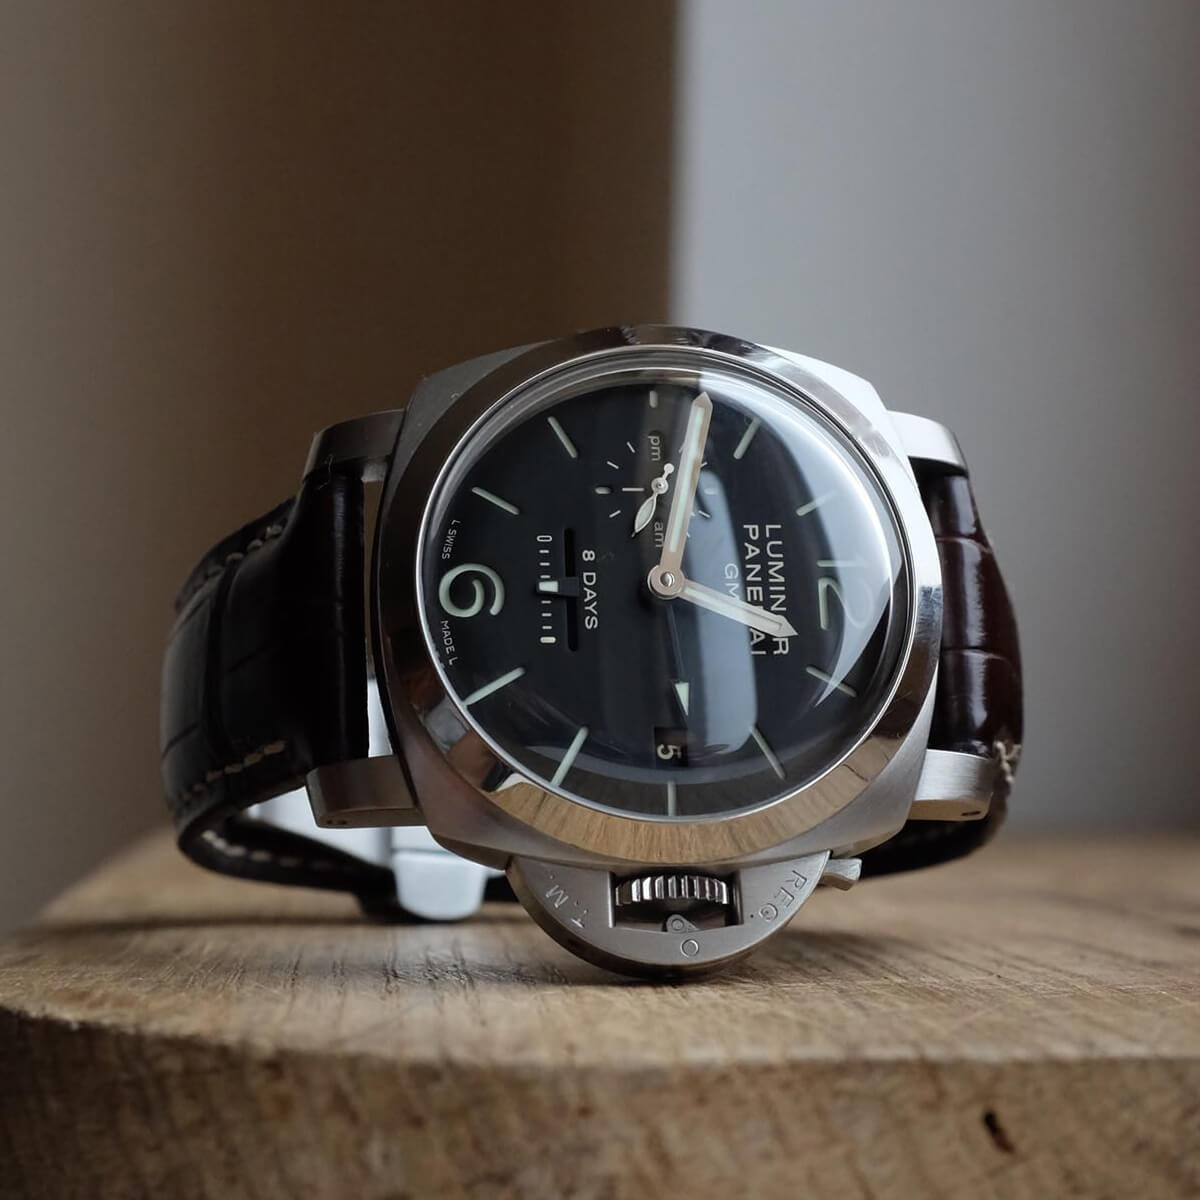 Officine Panerai Luminor 1950 GMT 8 Days